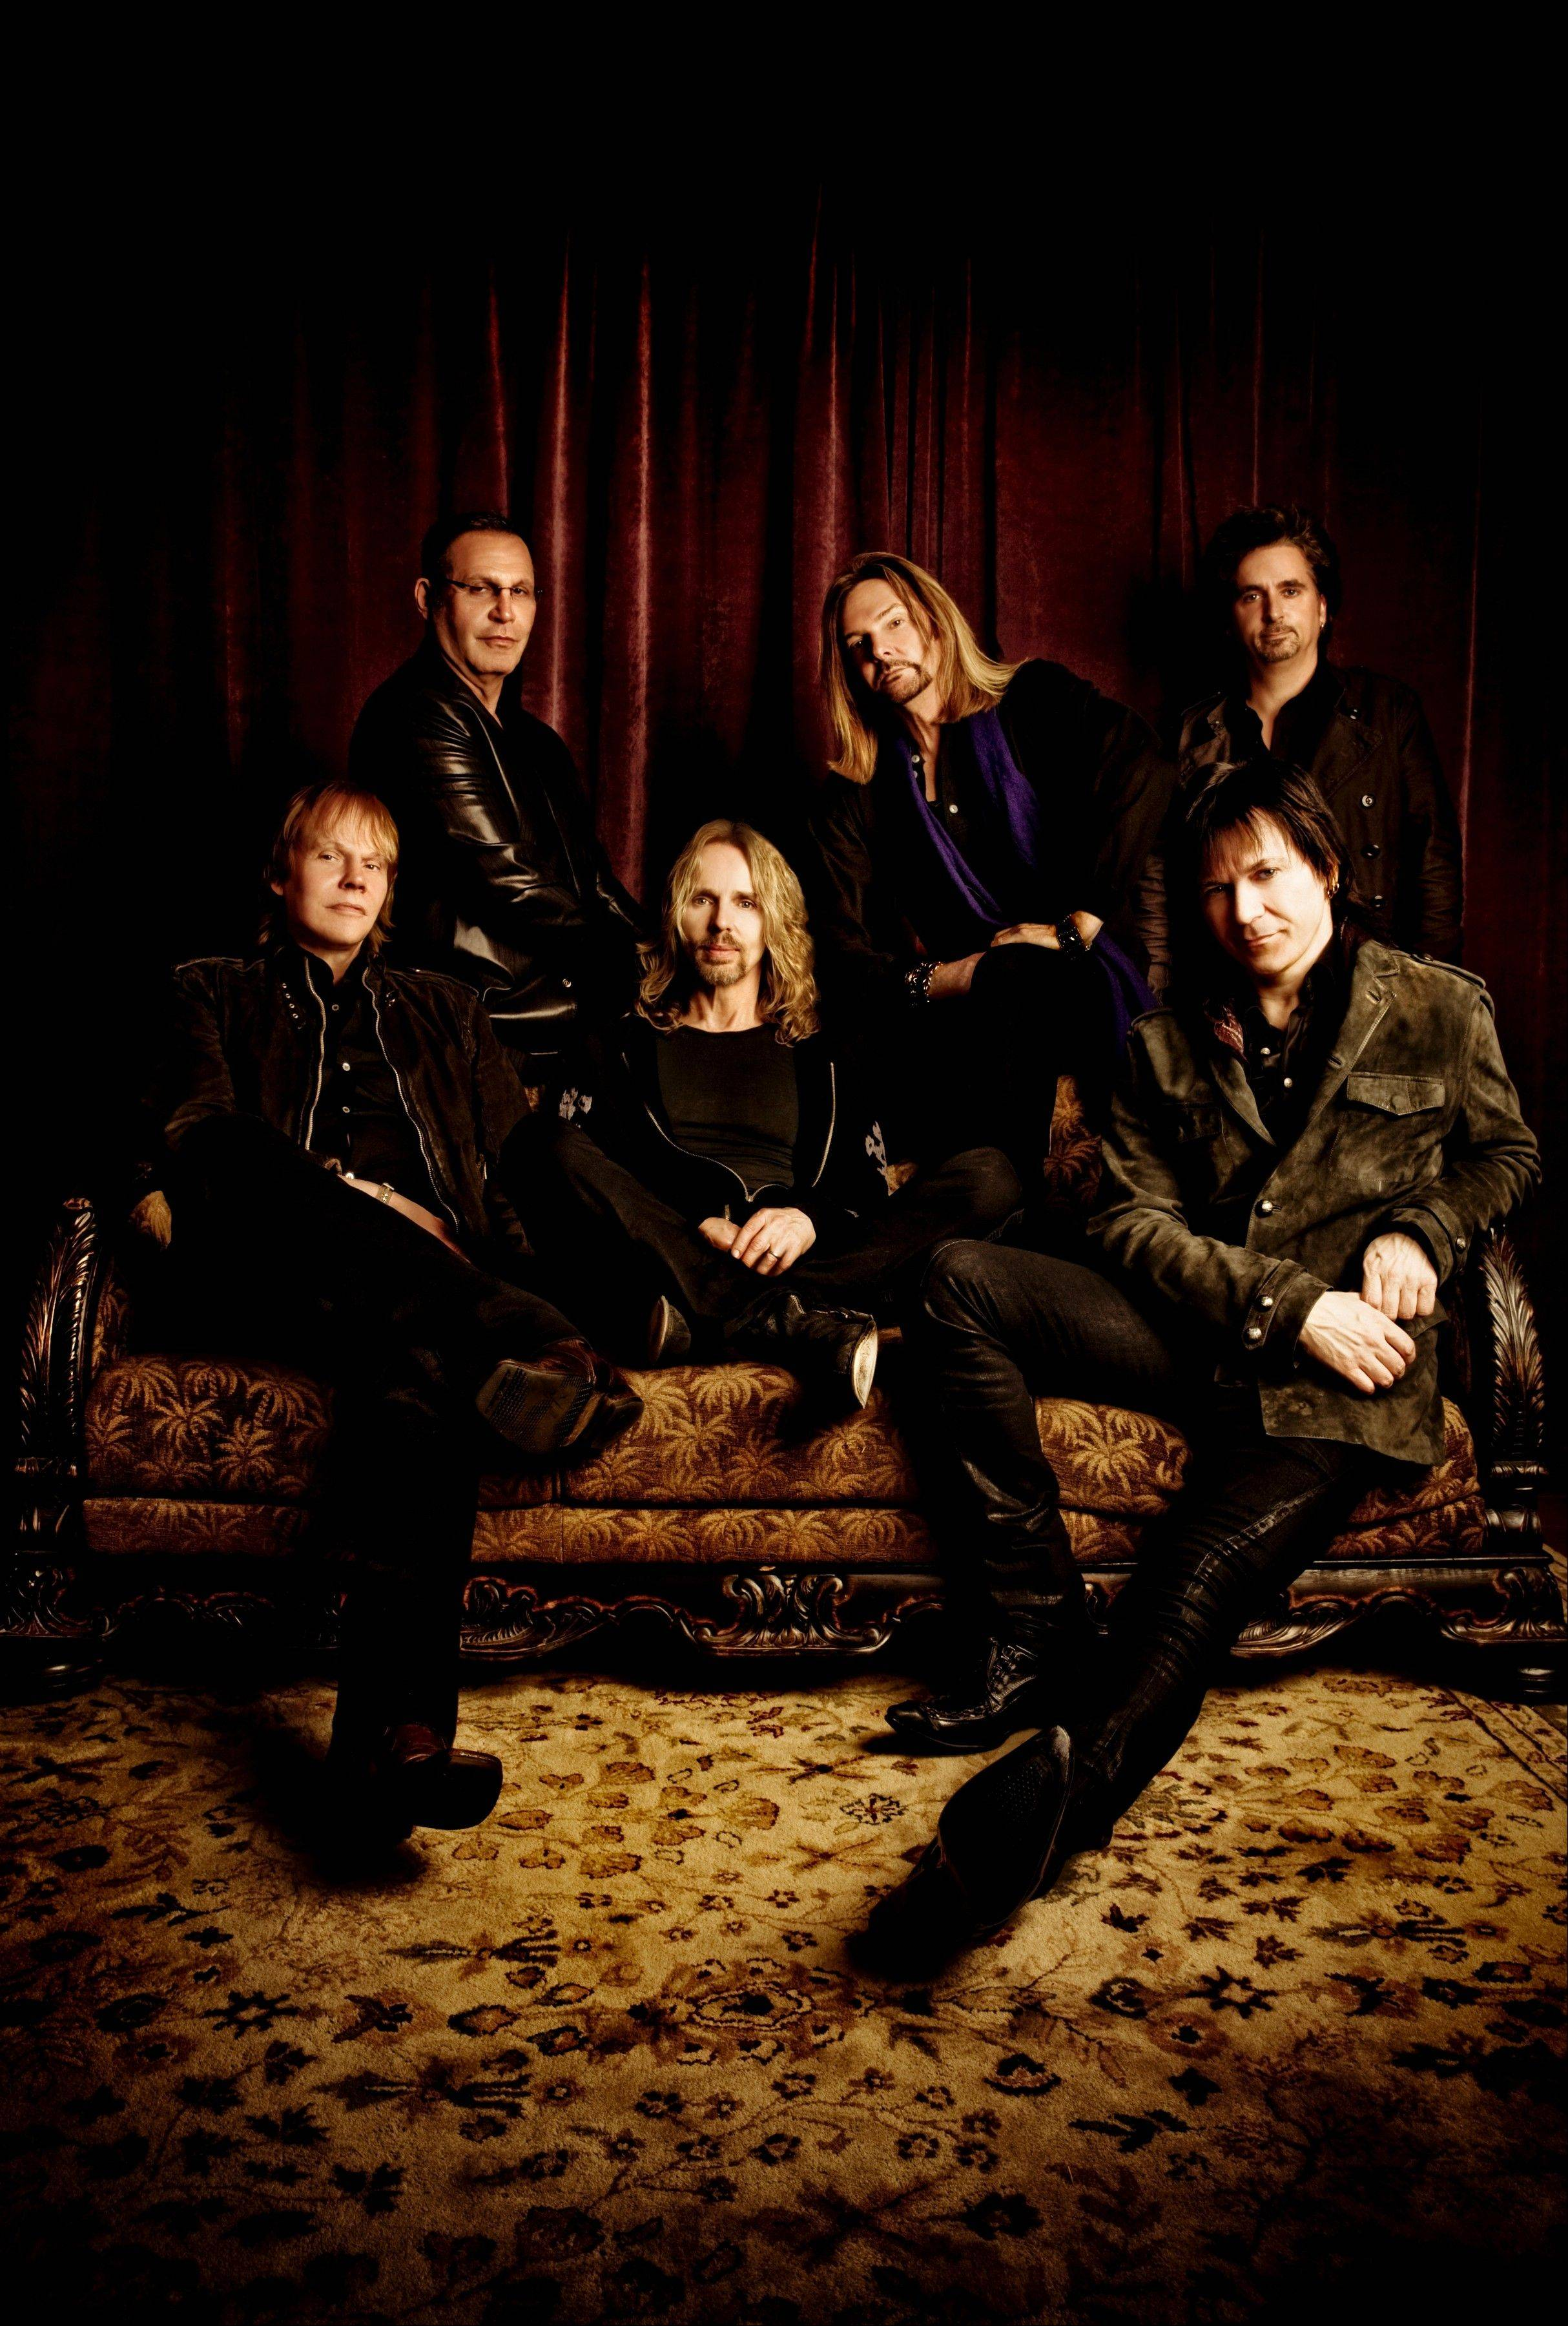 Styx plays the Genesee Theatre on Saturday, Dec. 29.